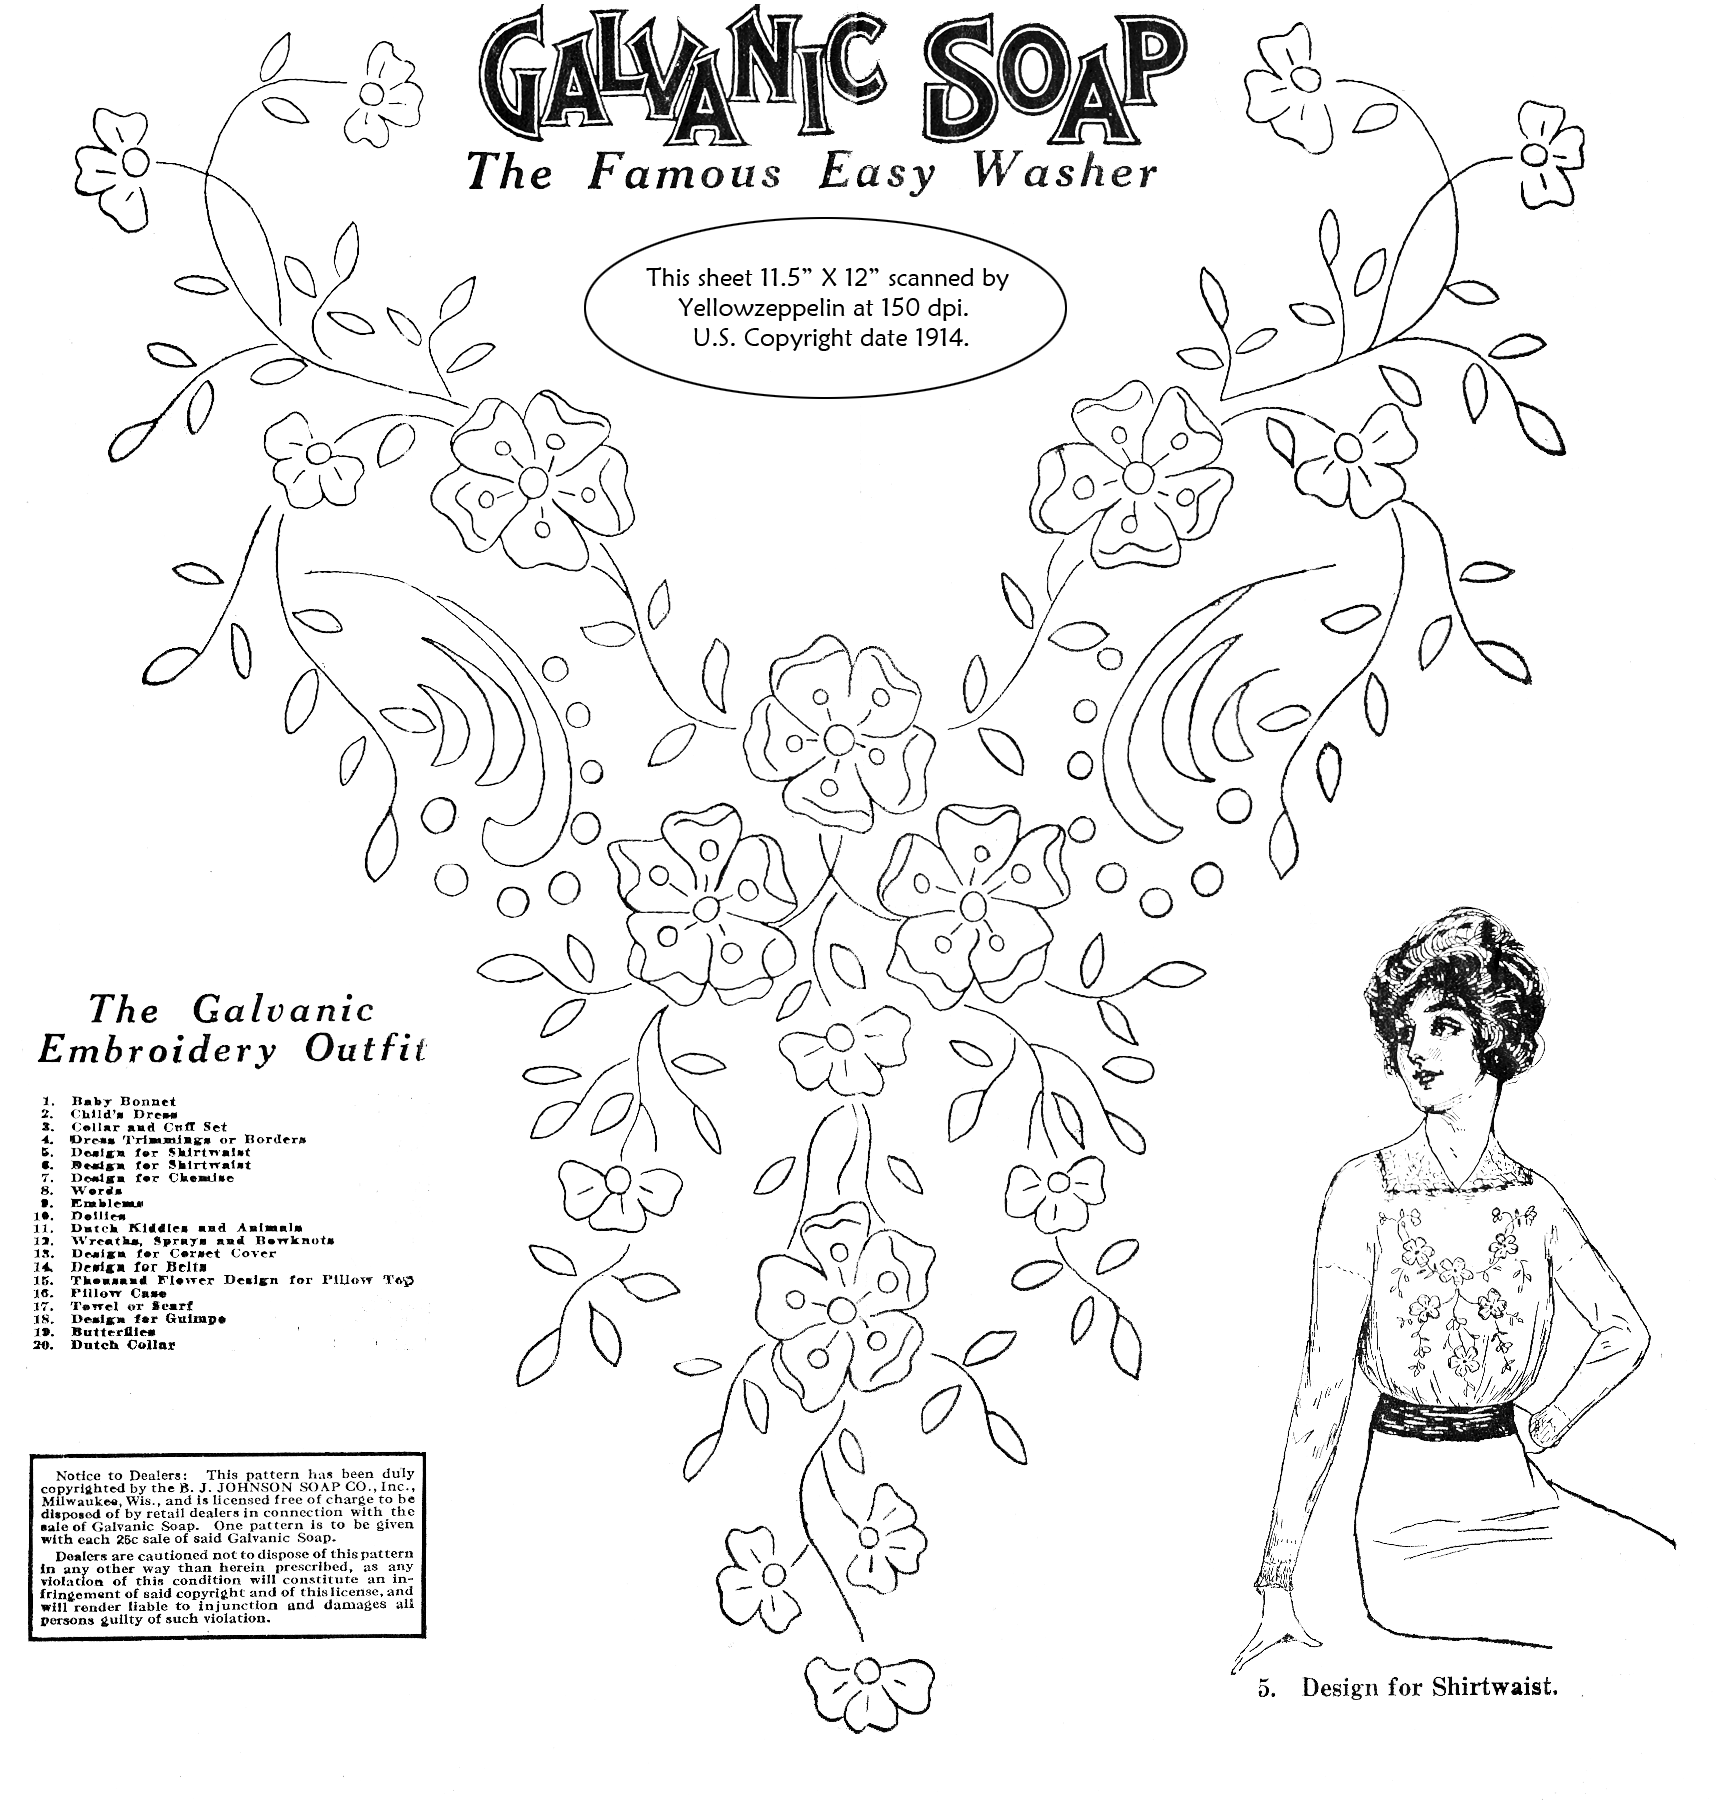 Galvanic Soap embroidery transfer for shirtwaist